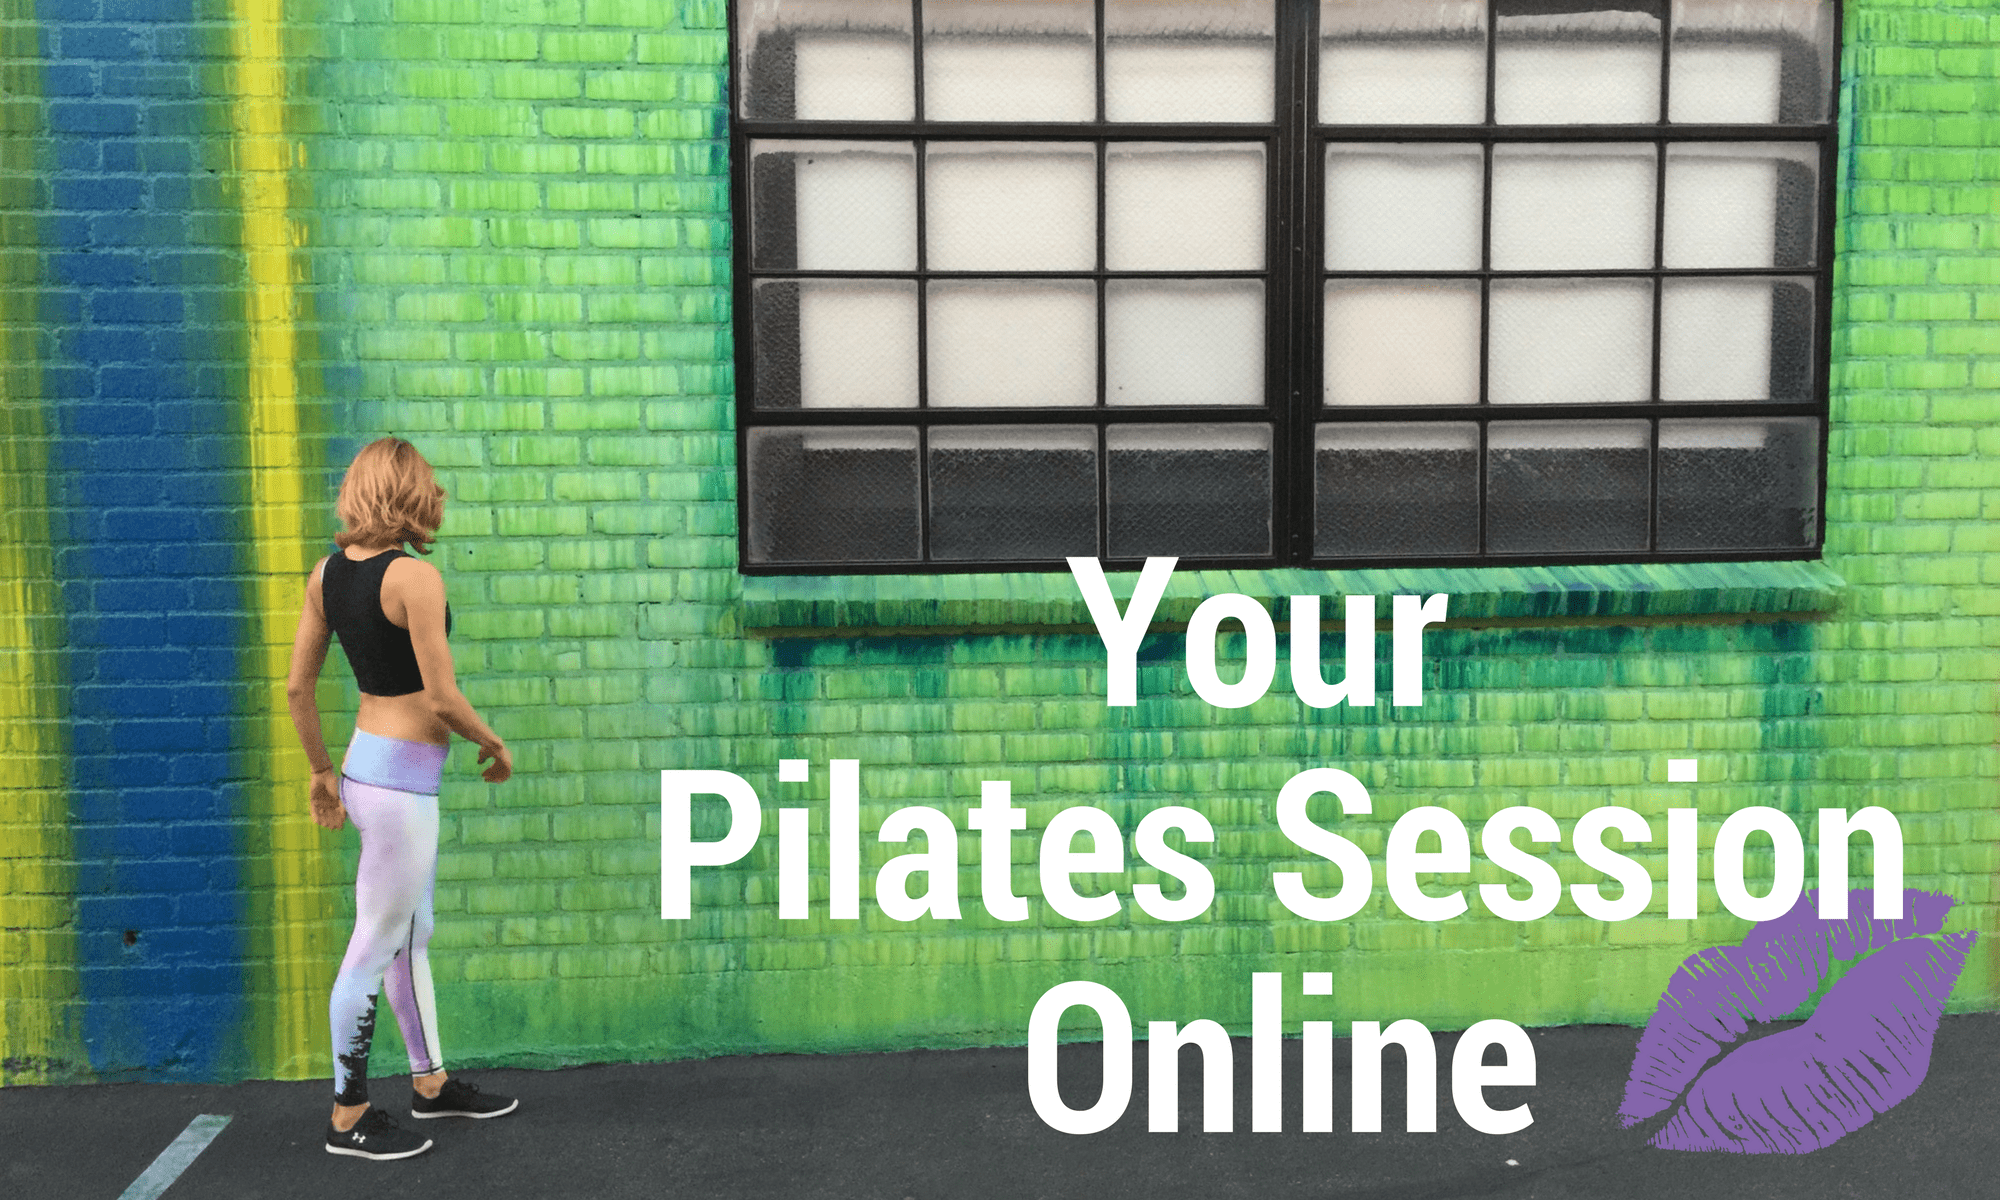 Your Pilates Session Online Lesley Logan Pilates